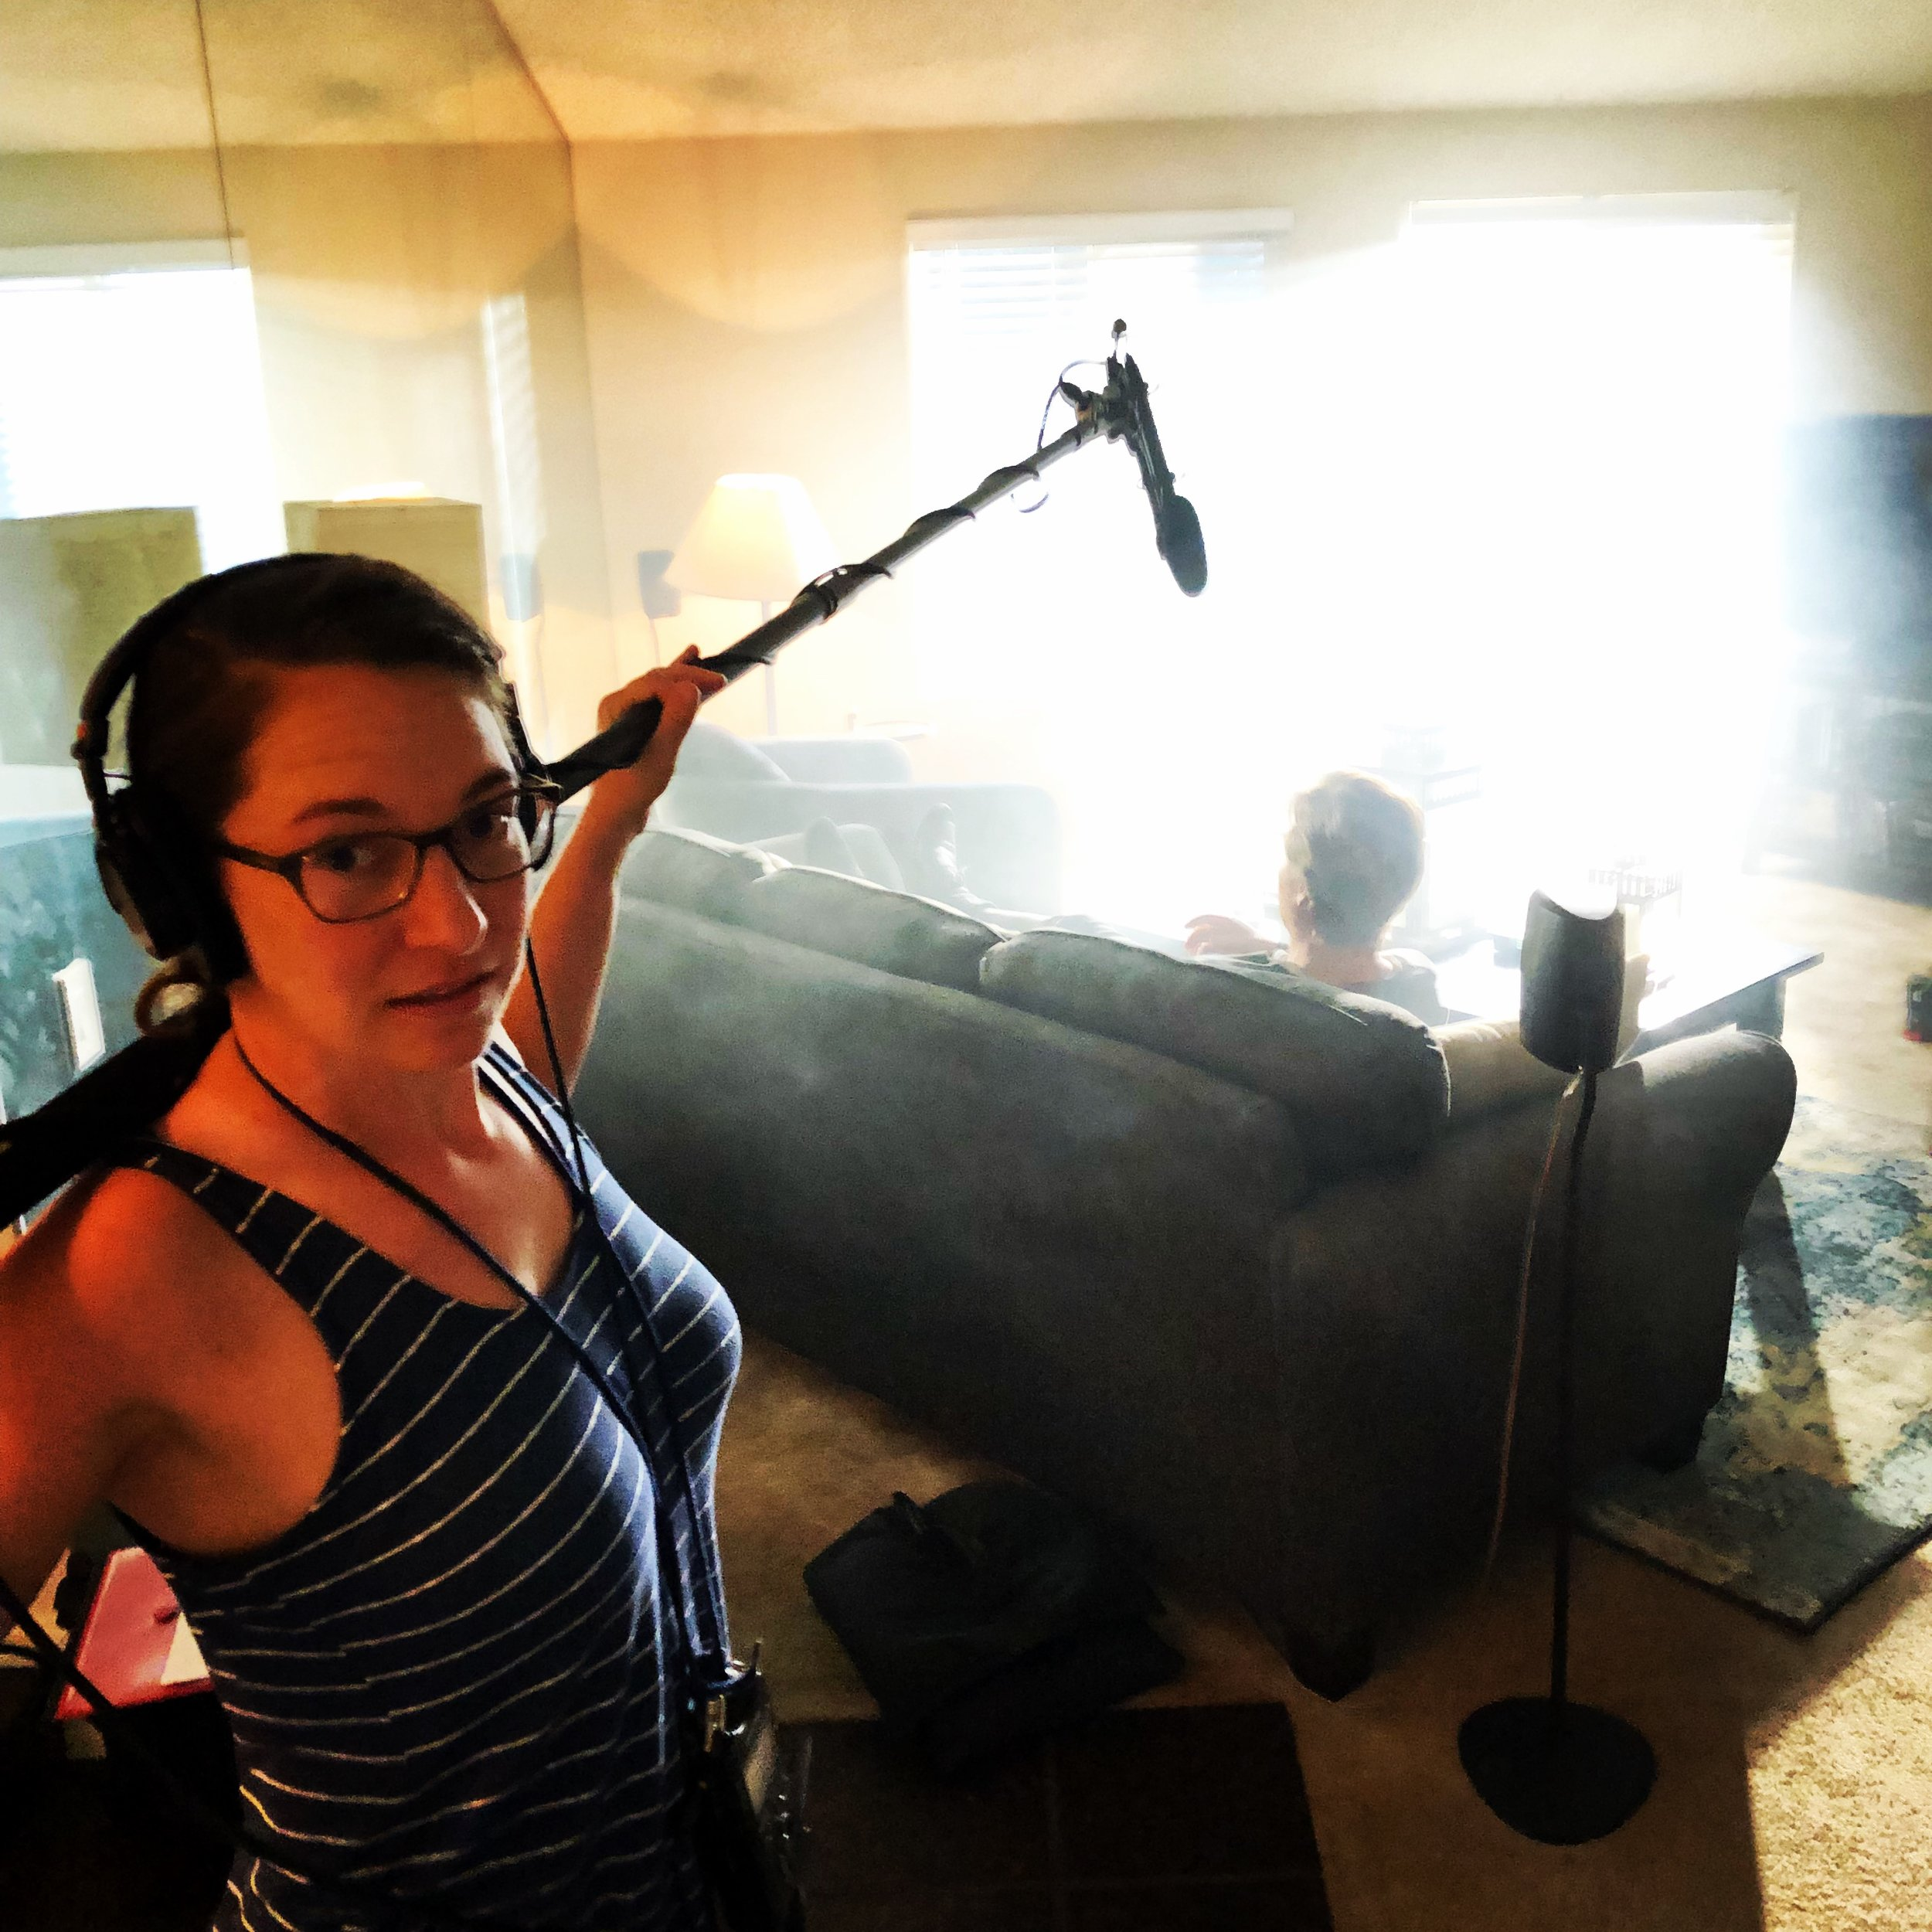 Holding the boom mic, good thing I work out.